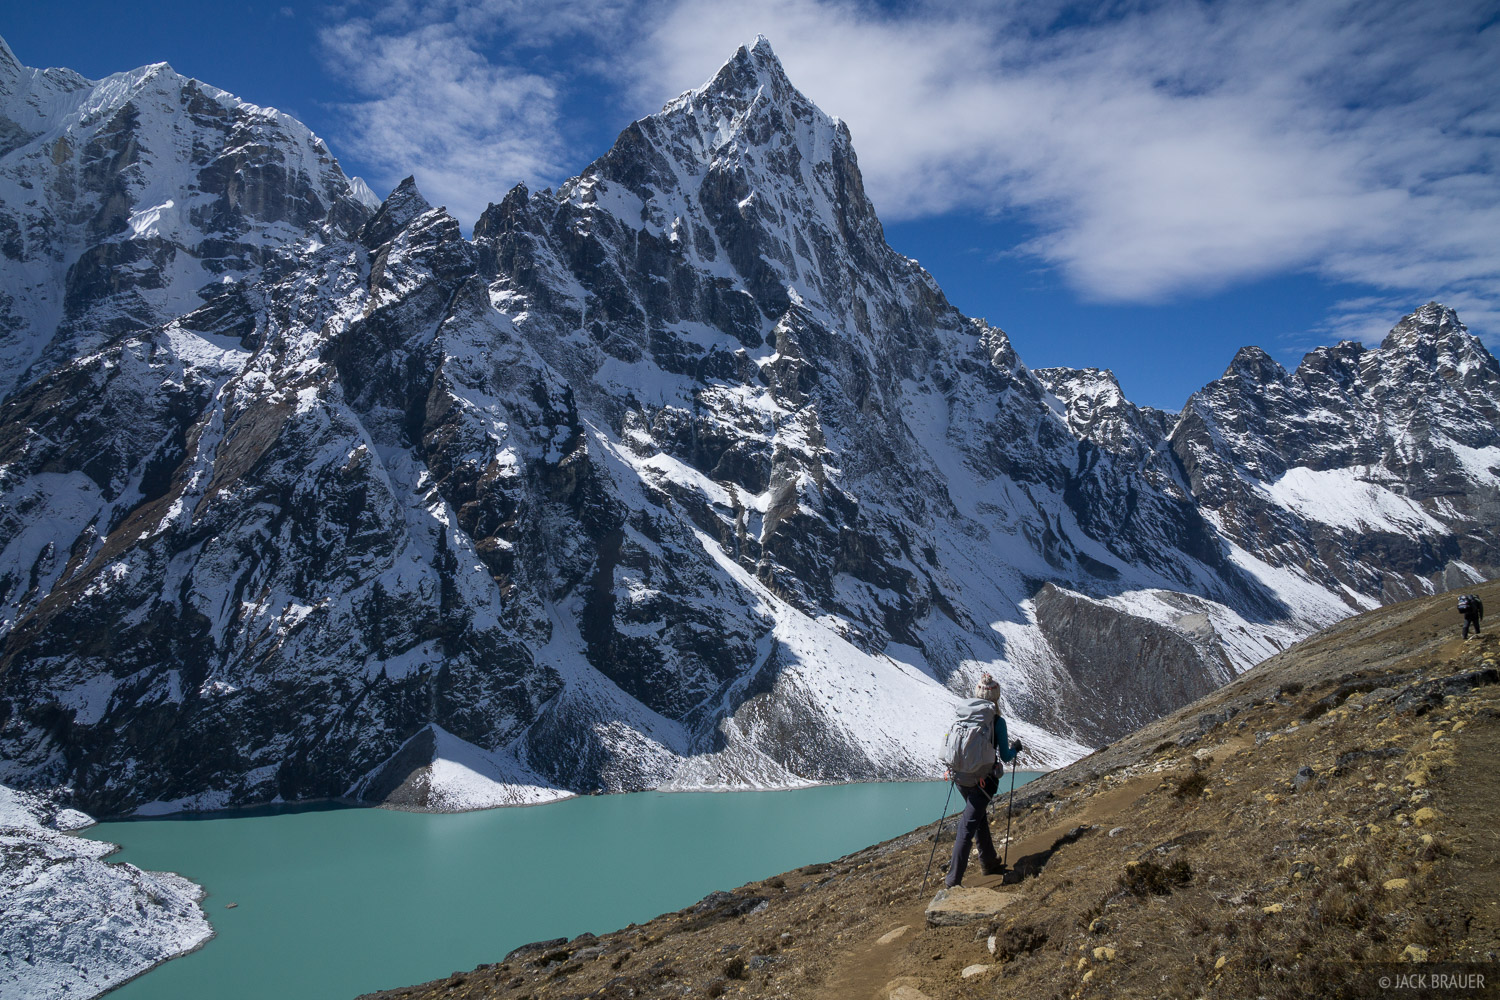 Cholatse,Himalaya,Khumbu,Nepal, hiking, photo